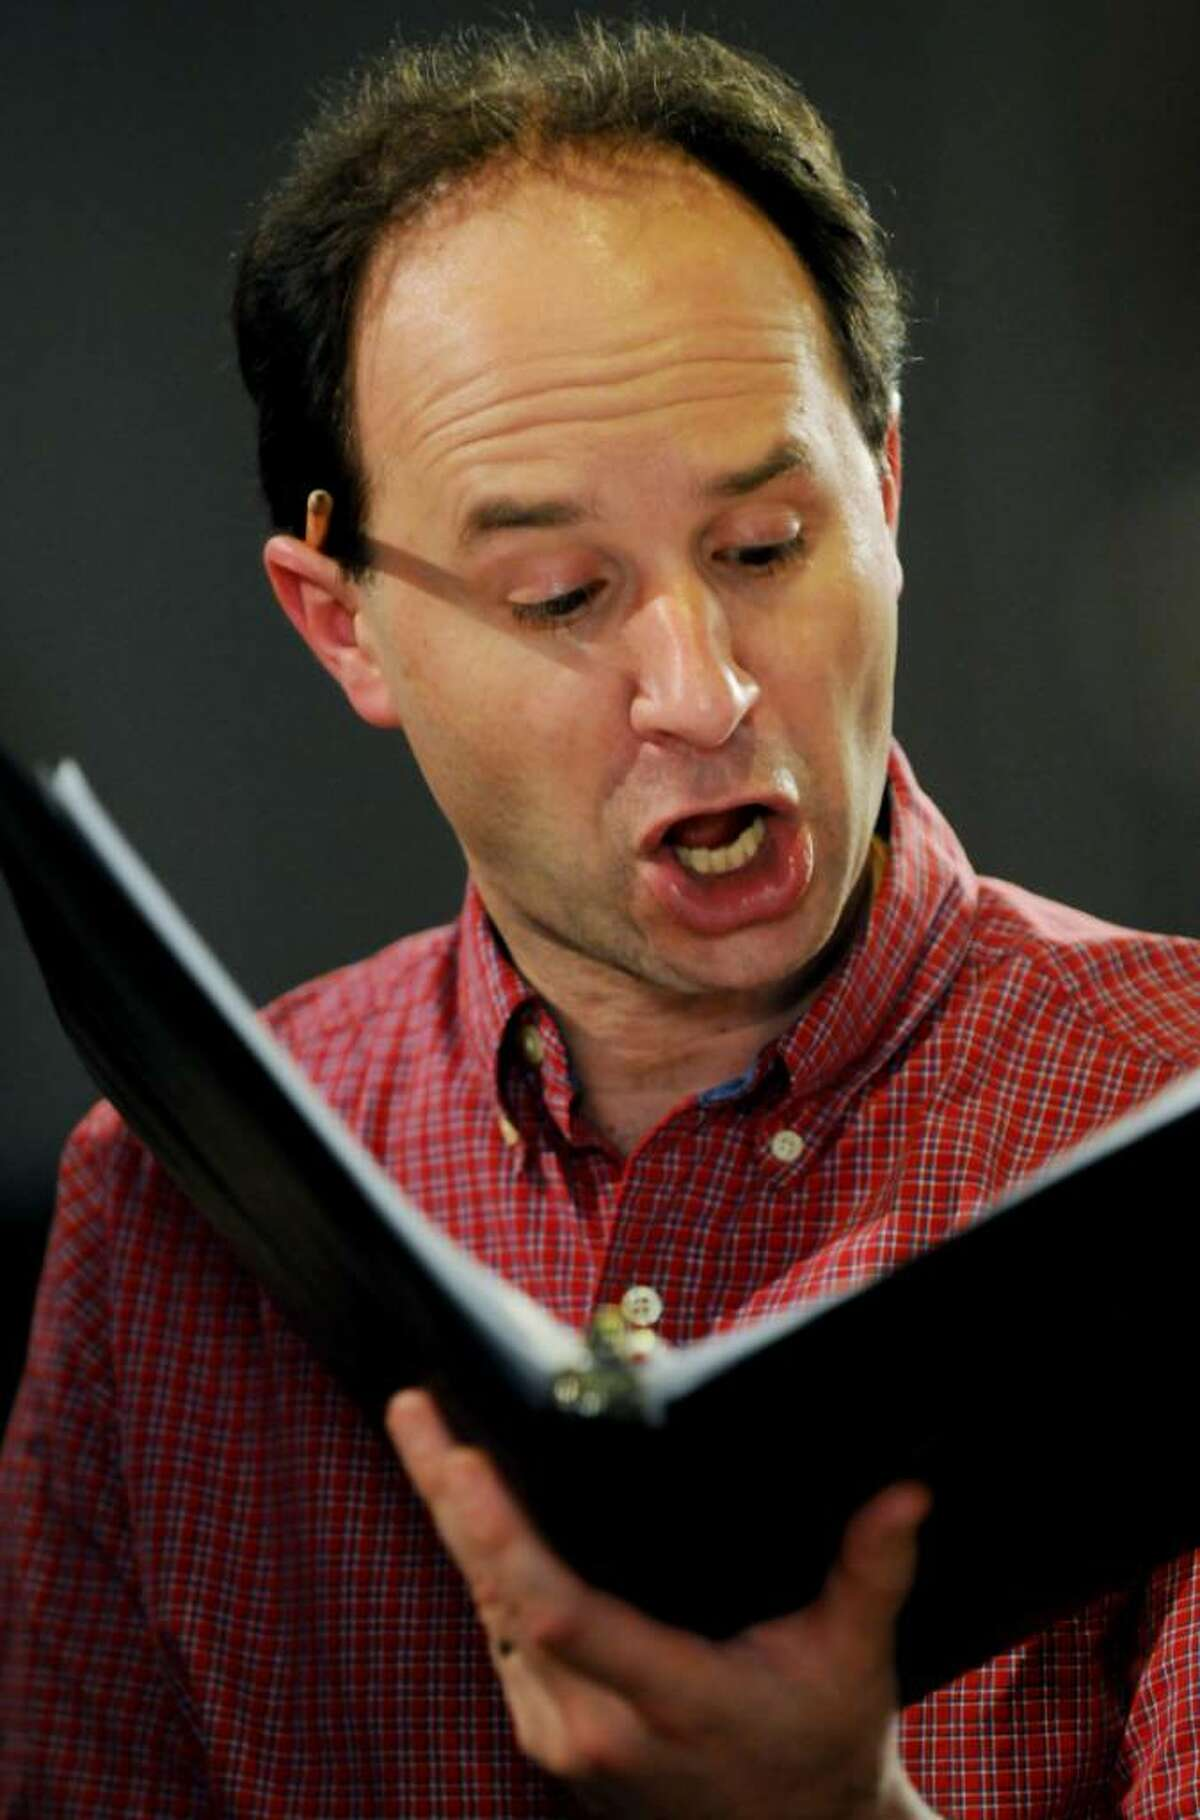 John Schreiner of Schenectady, a singer in the Aoede Consort, rehearses at St. Patrick's Roman Catholic Church in Watervliet on Monday, June 7, 2010. (Luanne M. Ferris / Times Union)